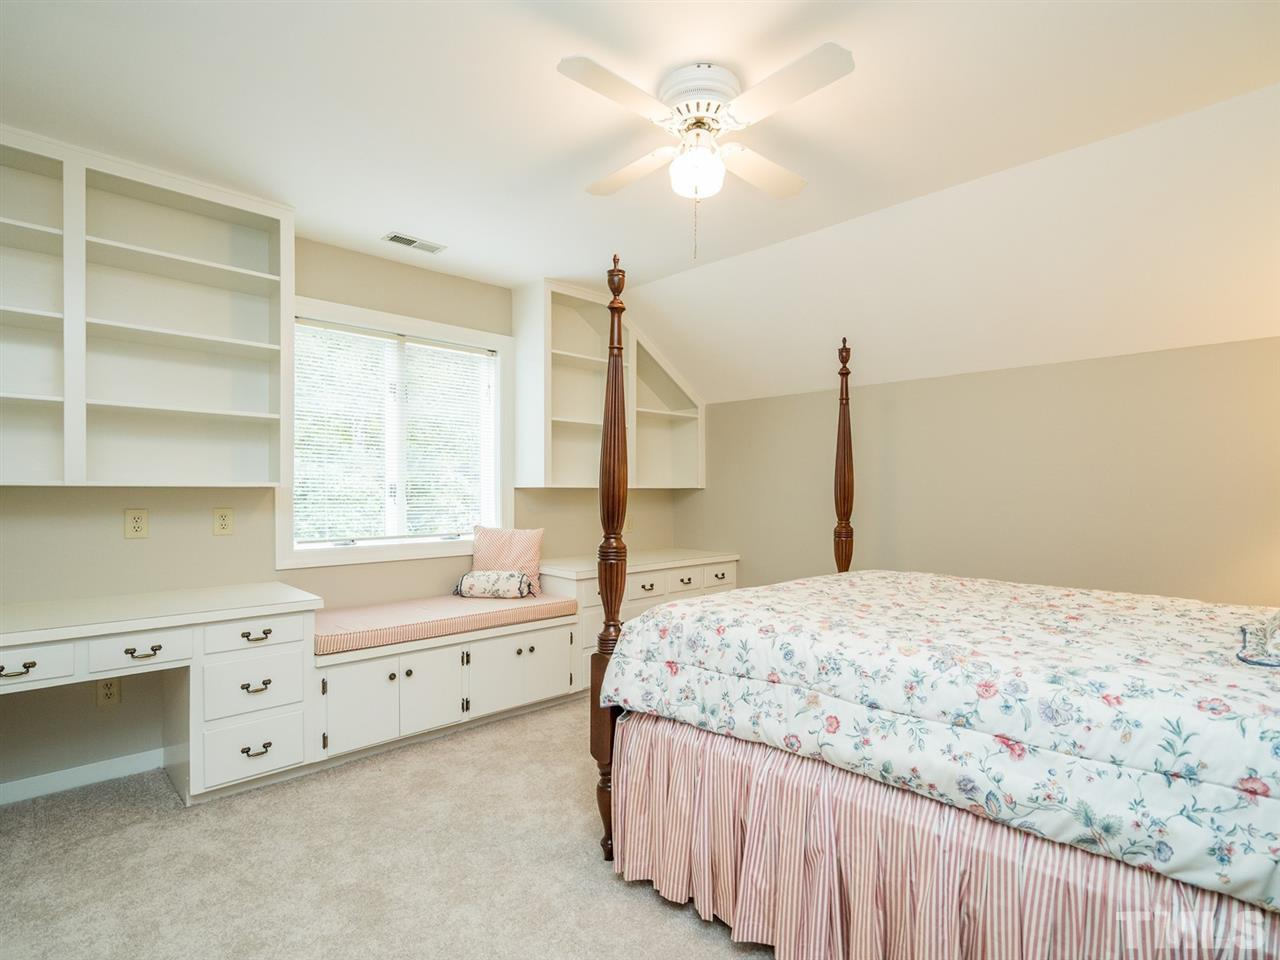 All secondary bedrooms have nicely-sized closets.